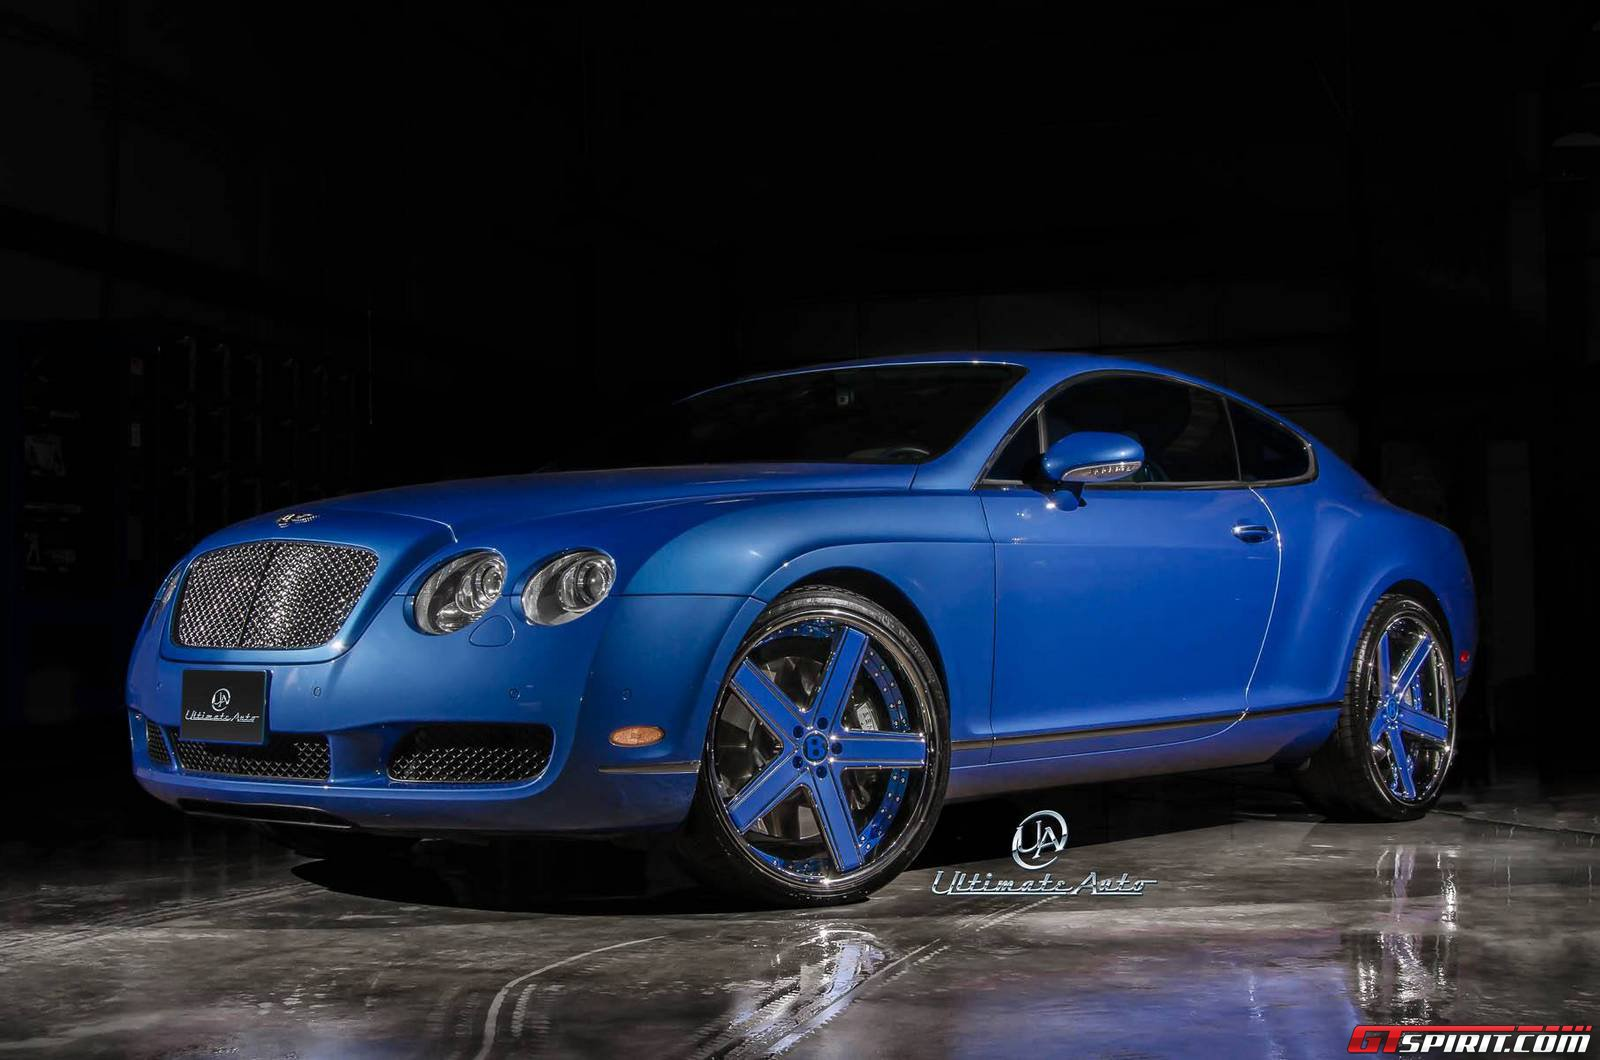 Azure Blue Bentley Continental Gt By Ultimate Auto Gtspirit